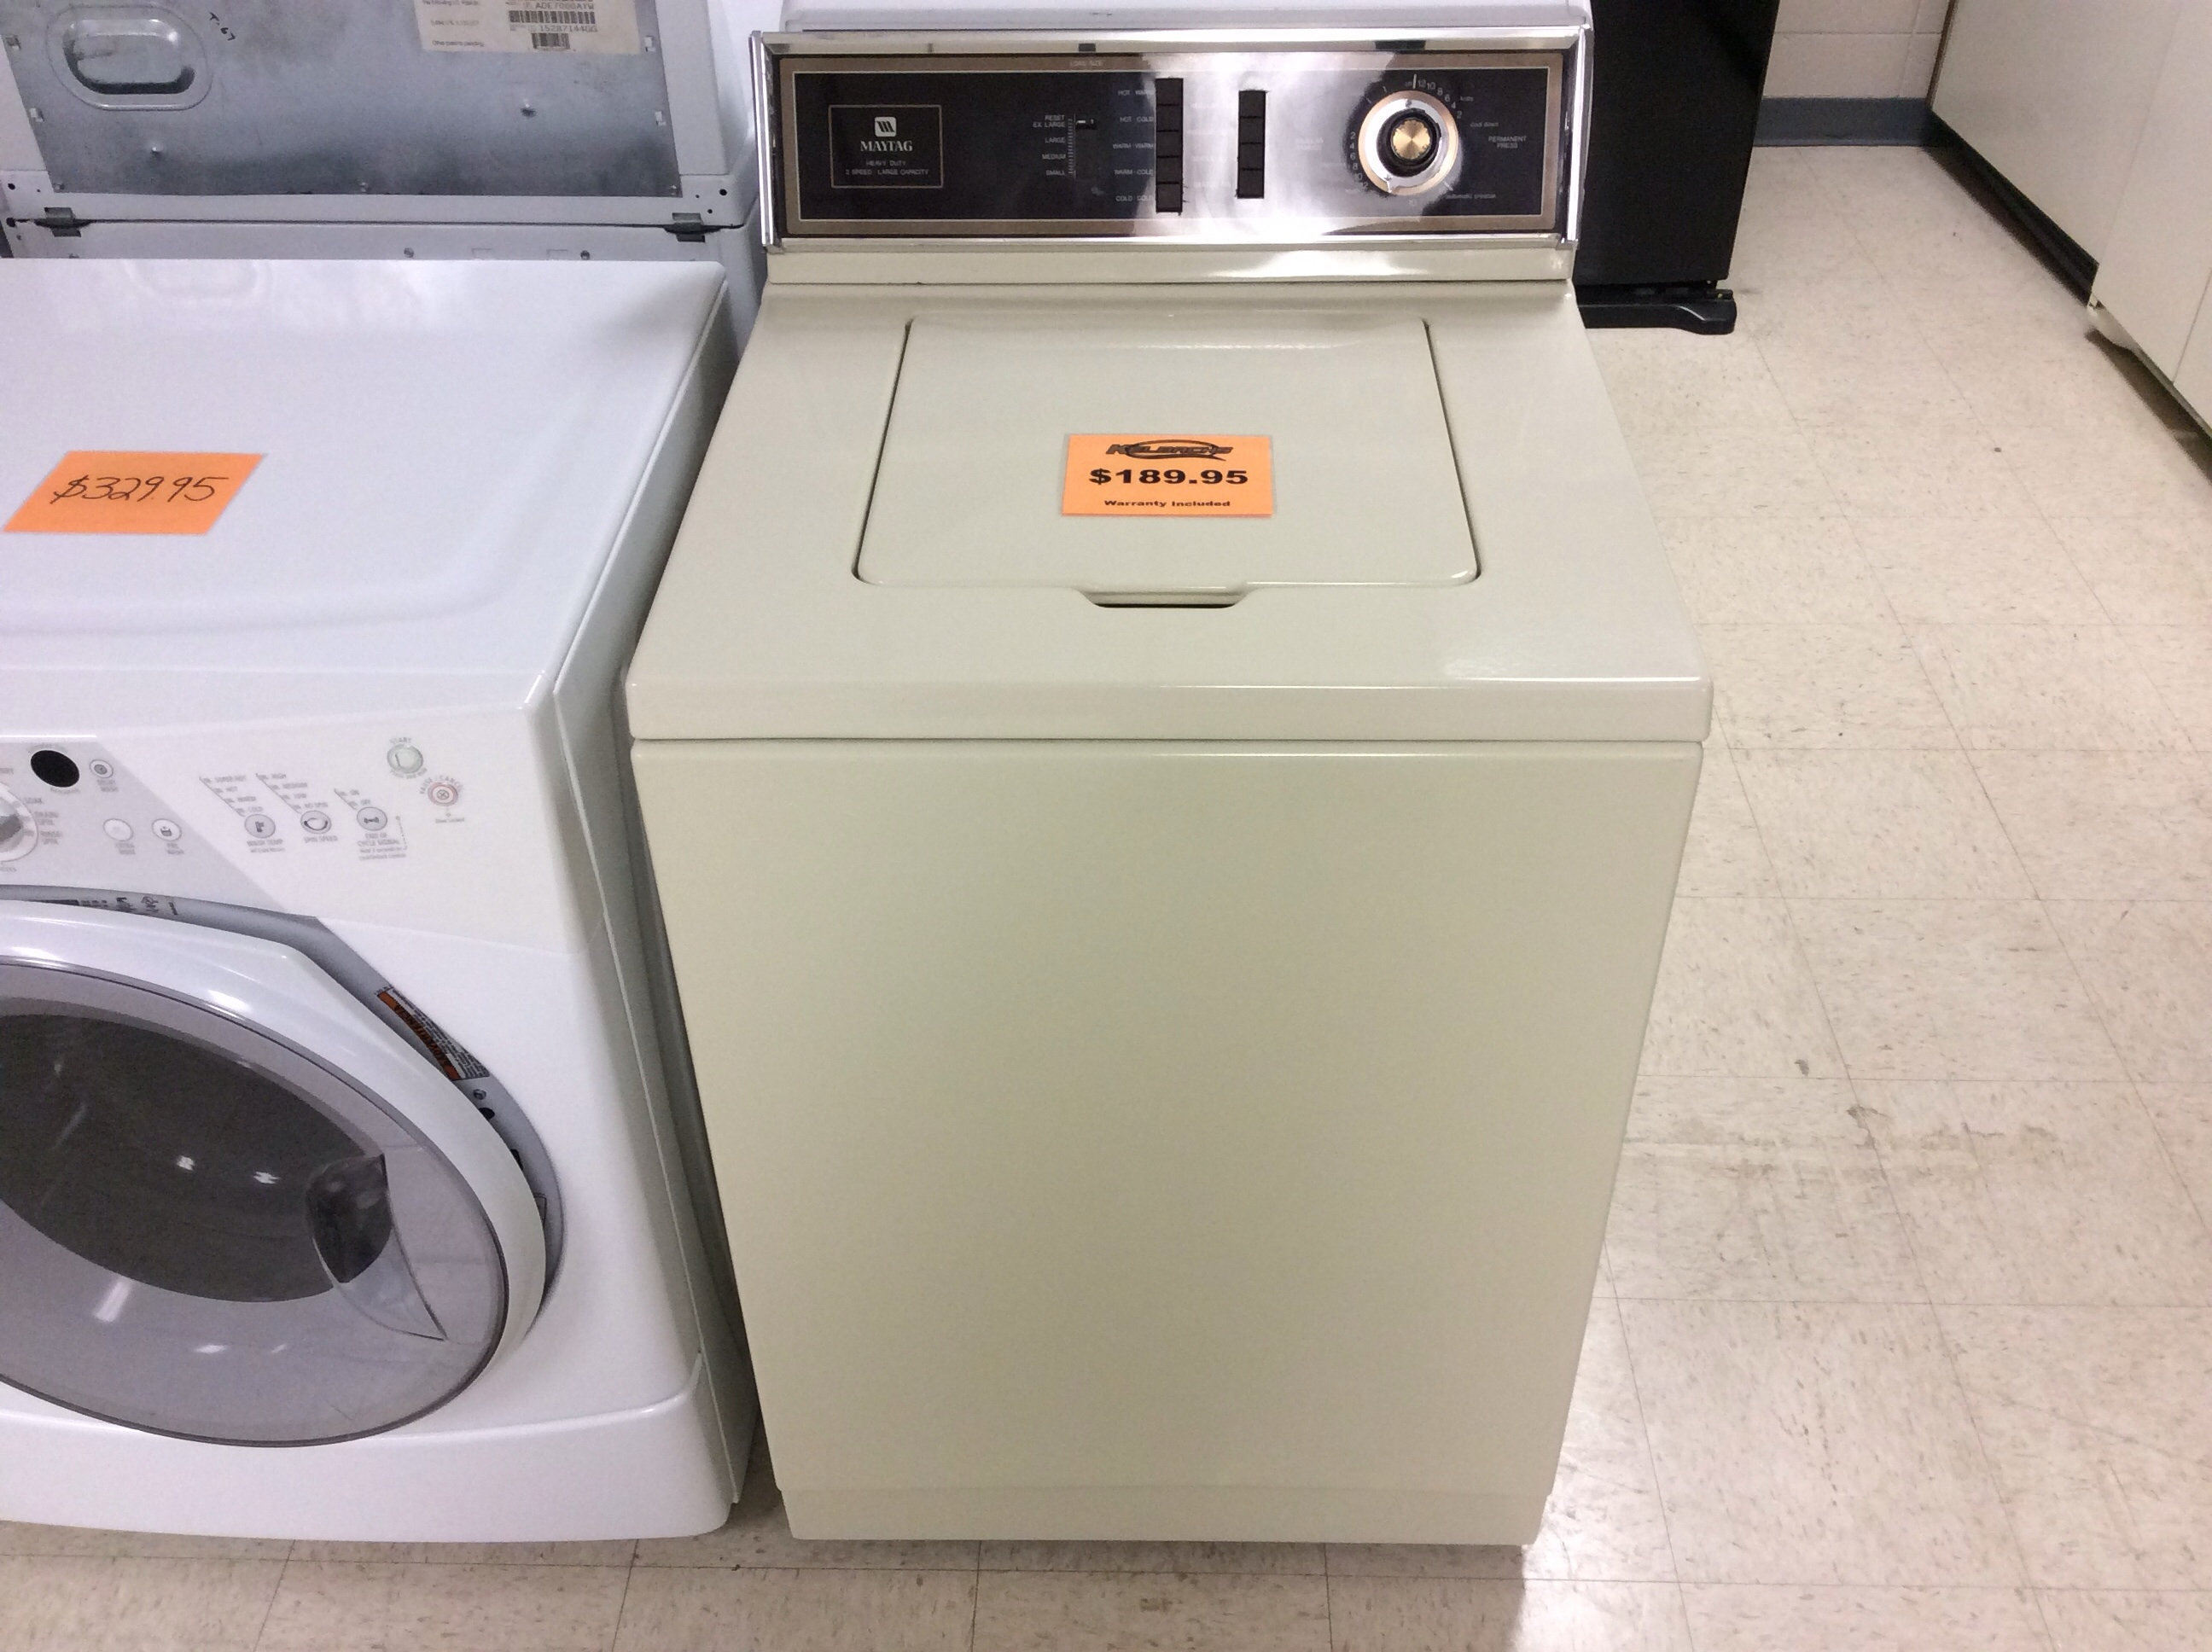 best washer 2015 maytag top load washer kelbachs 31755